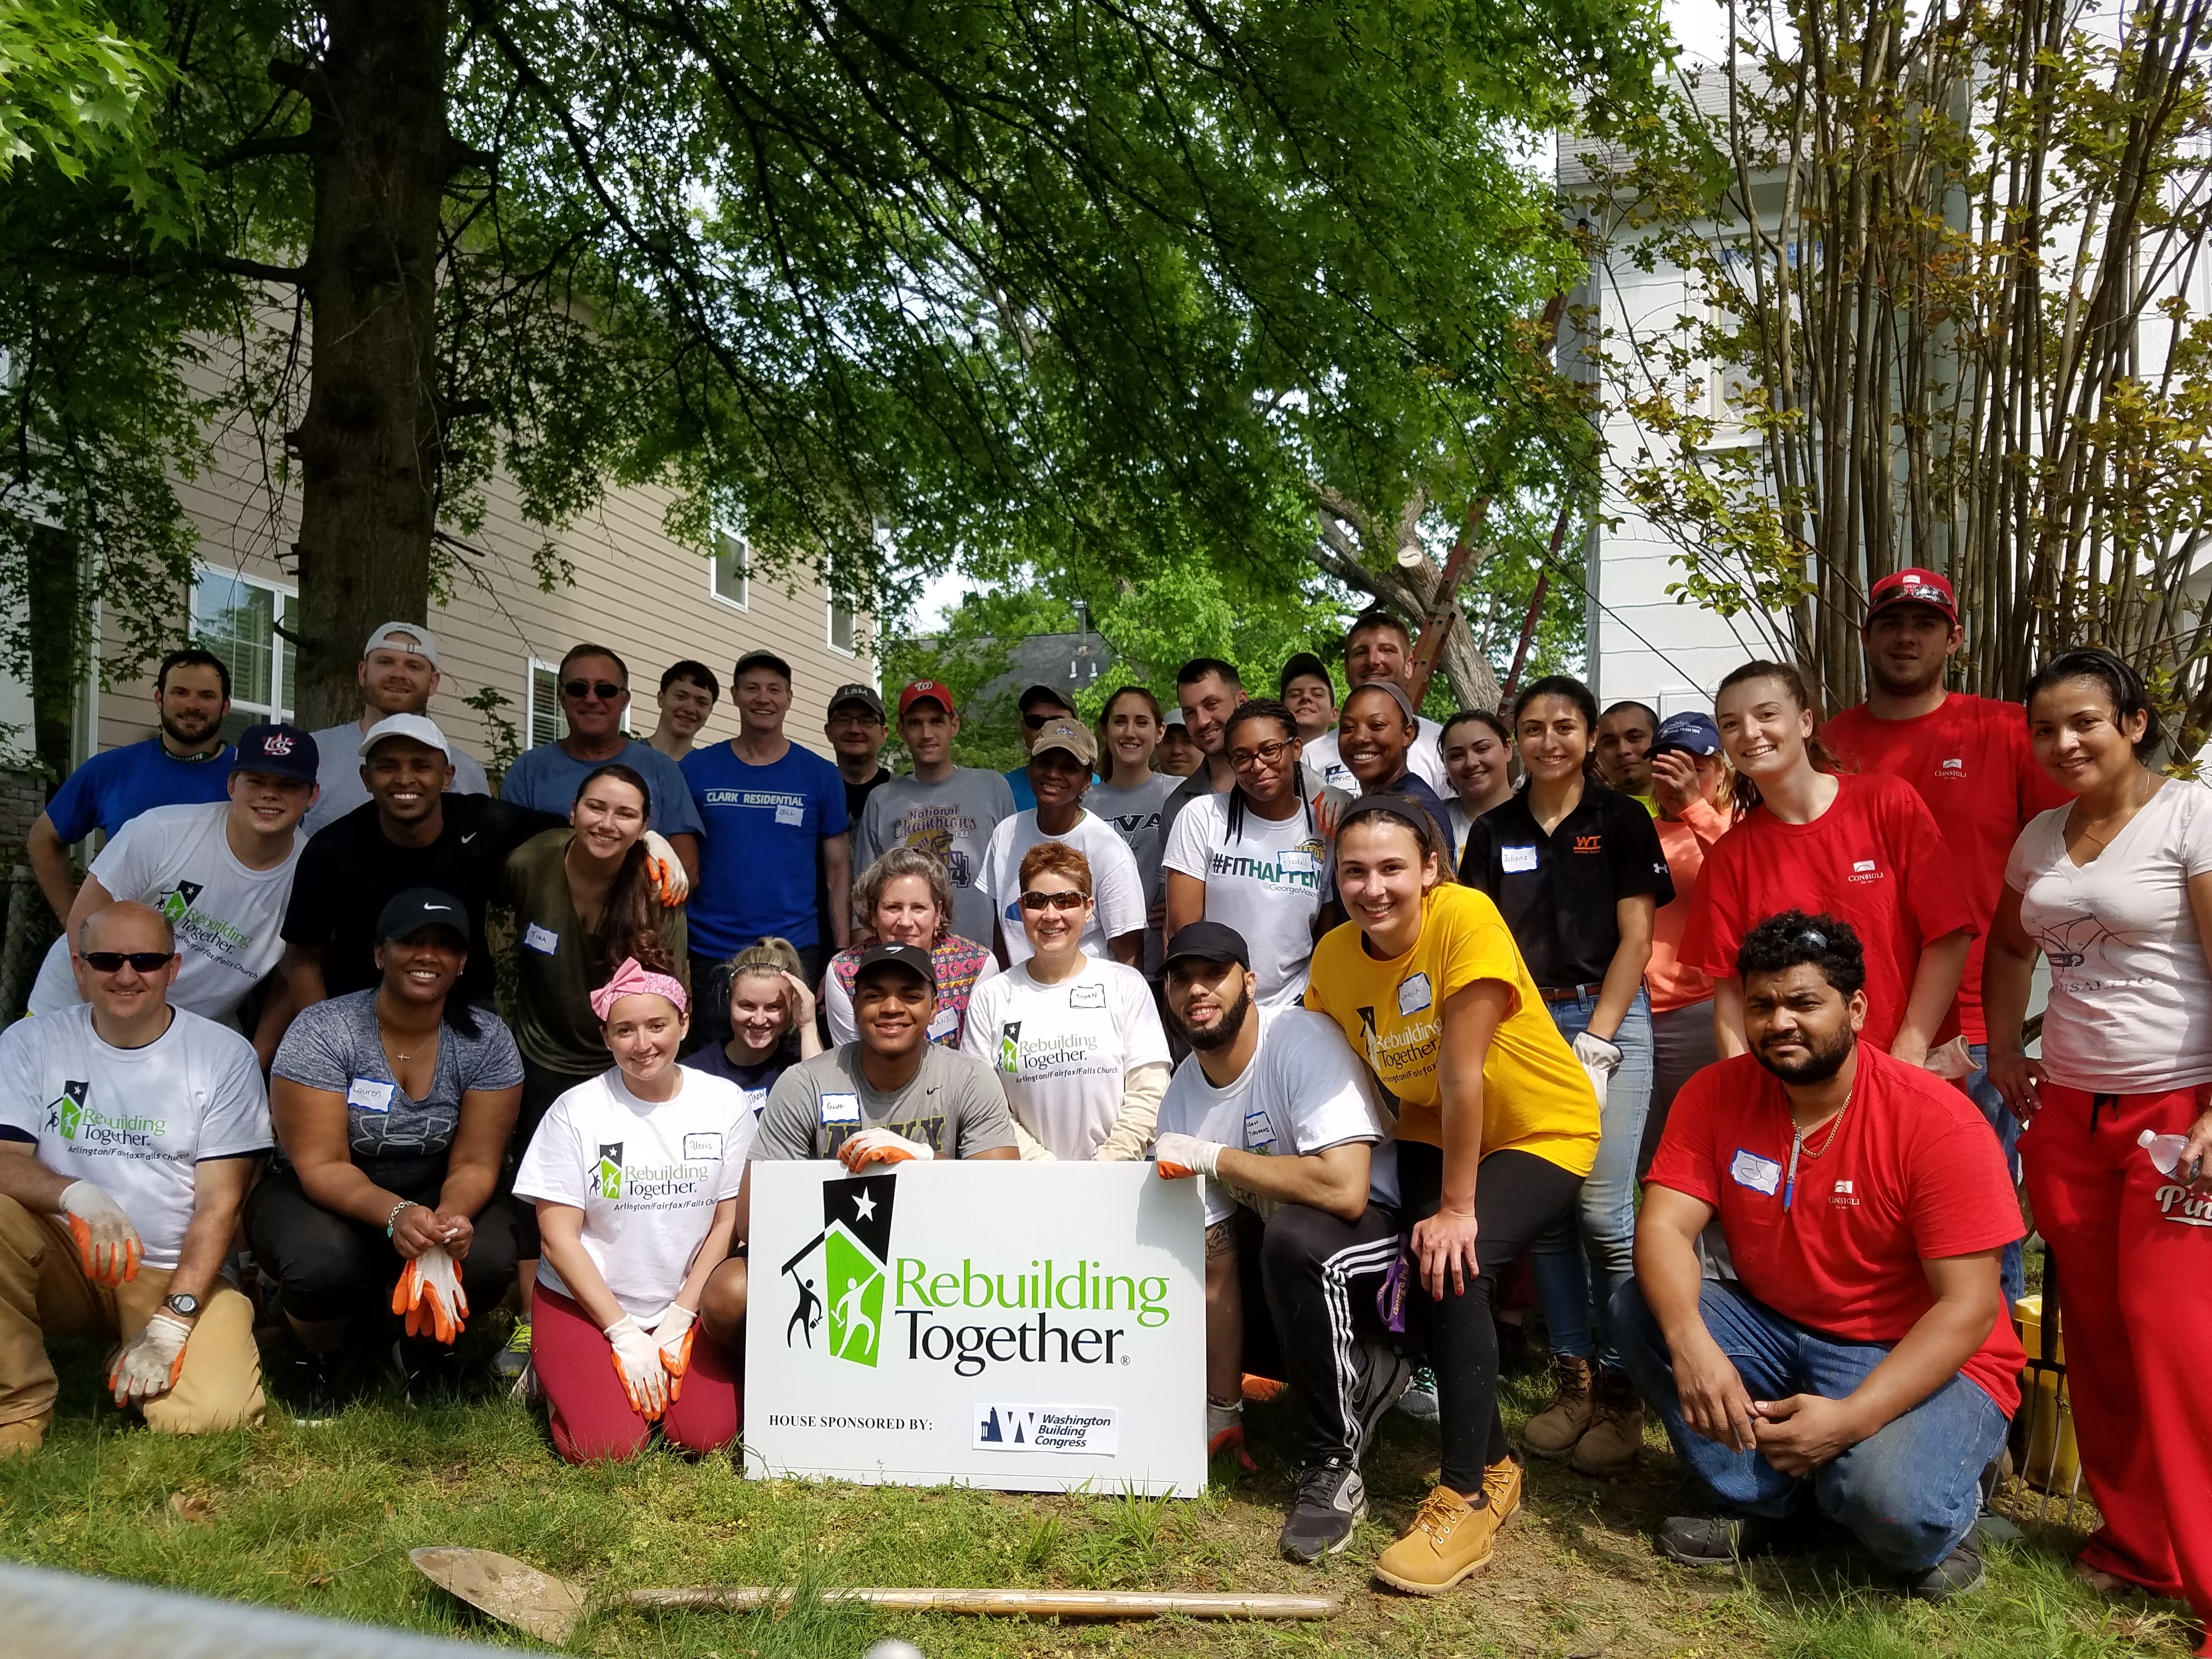 Rebuilding Together Workday Washington Building Congress